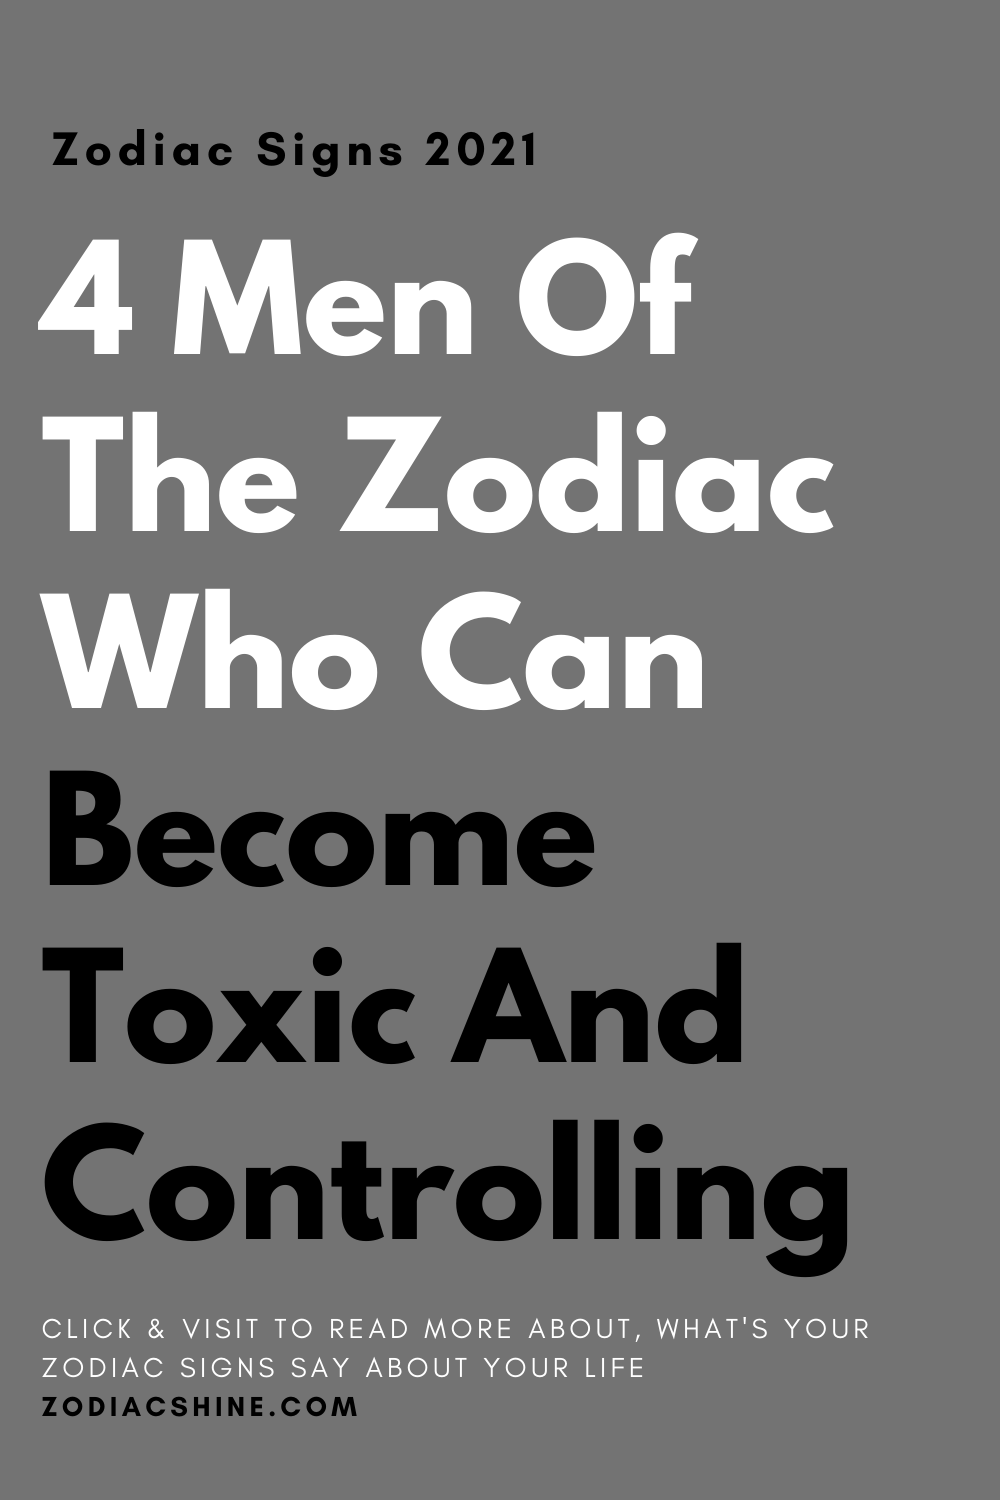 4 Men Of The Zodiac Who Can Become Toxic And Controlling